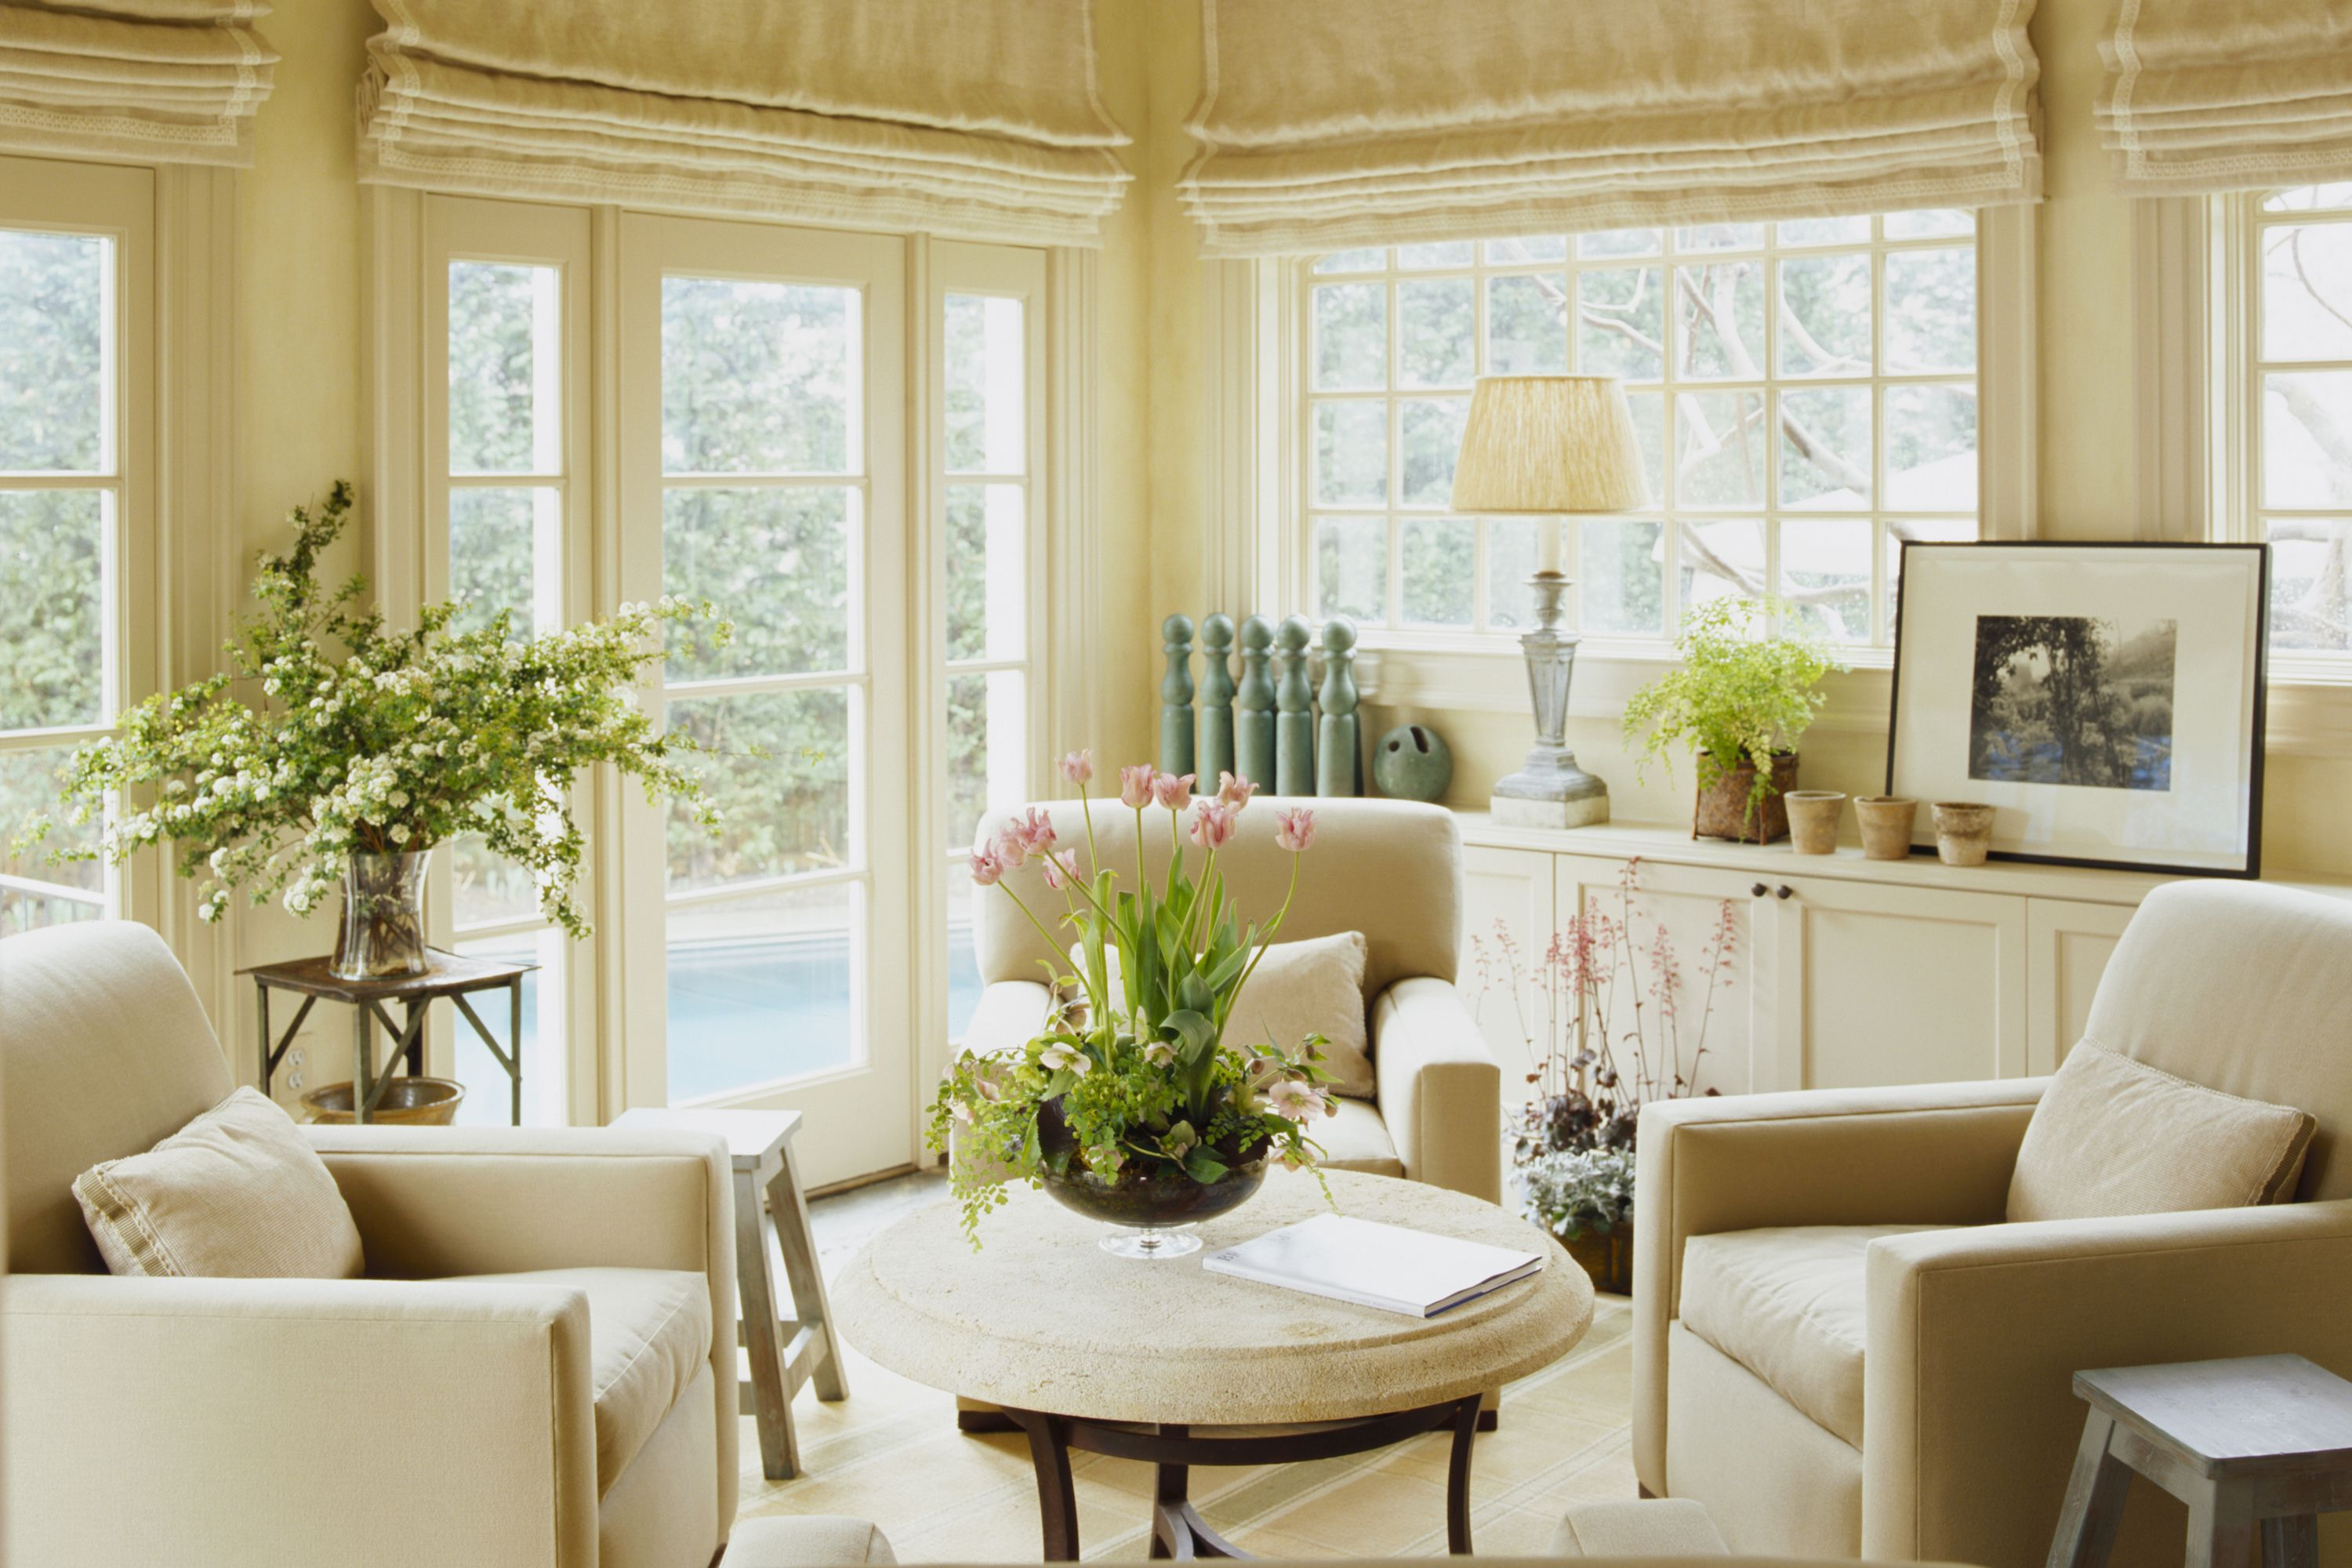 Sunroom Chairs Design Ideas And Inspirations For Stylish Comfort